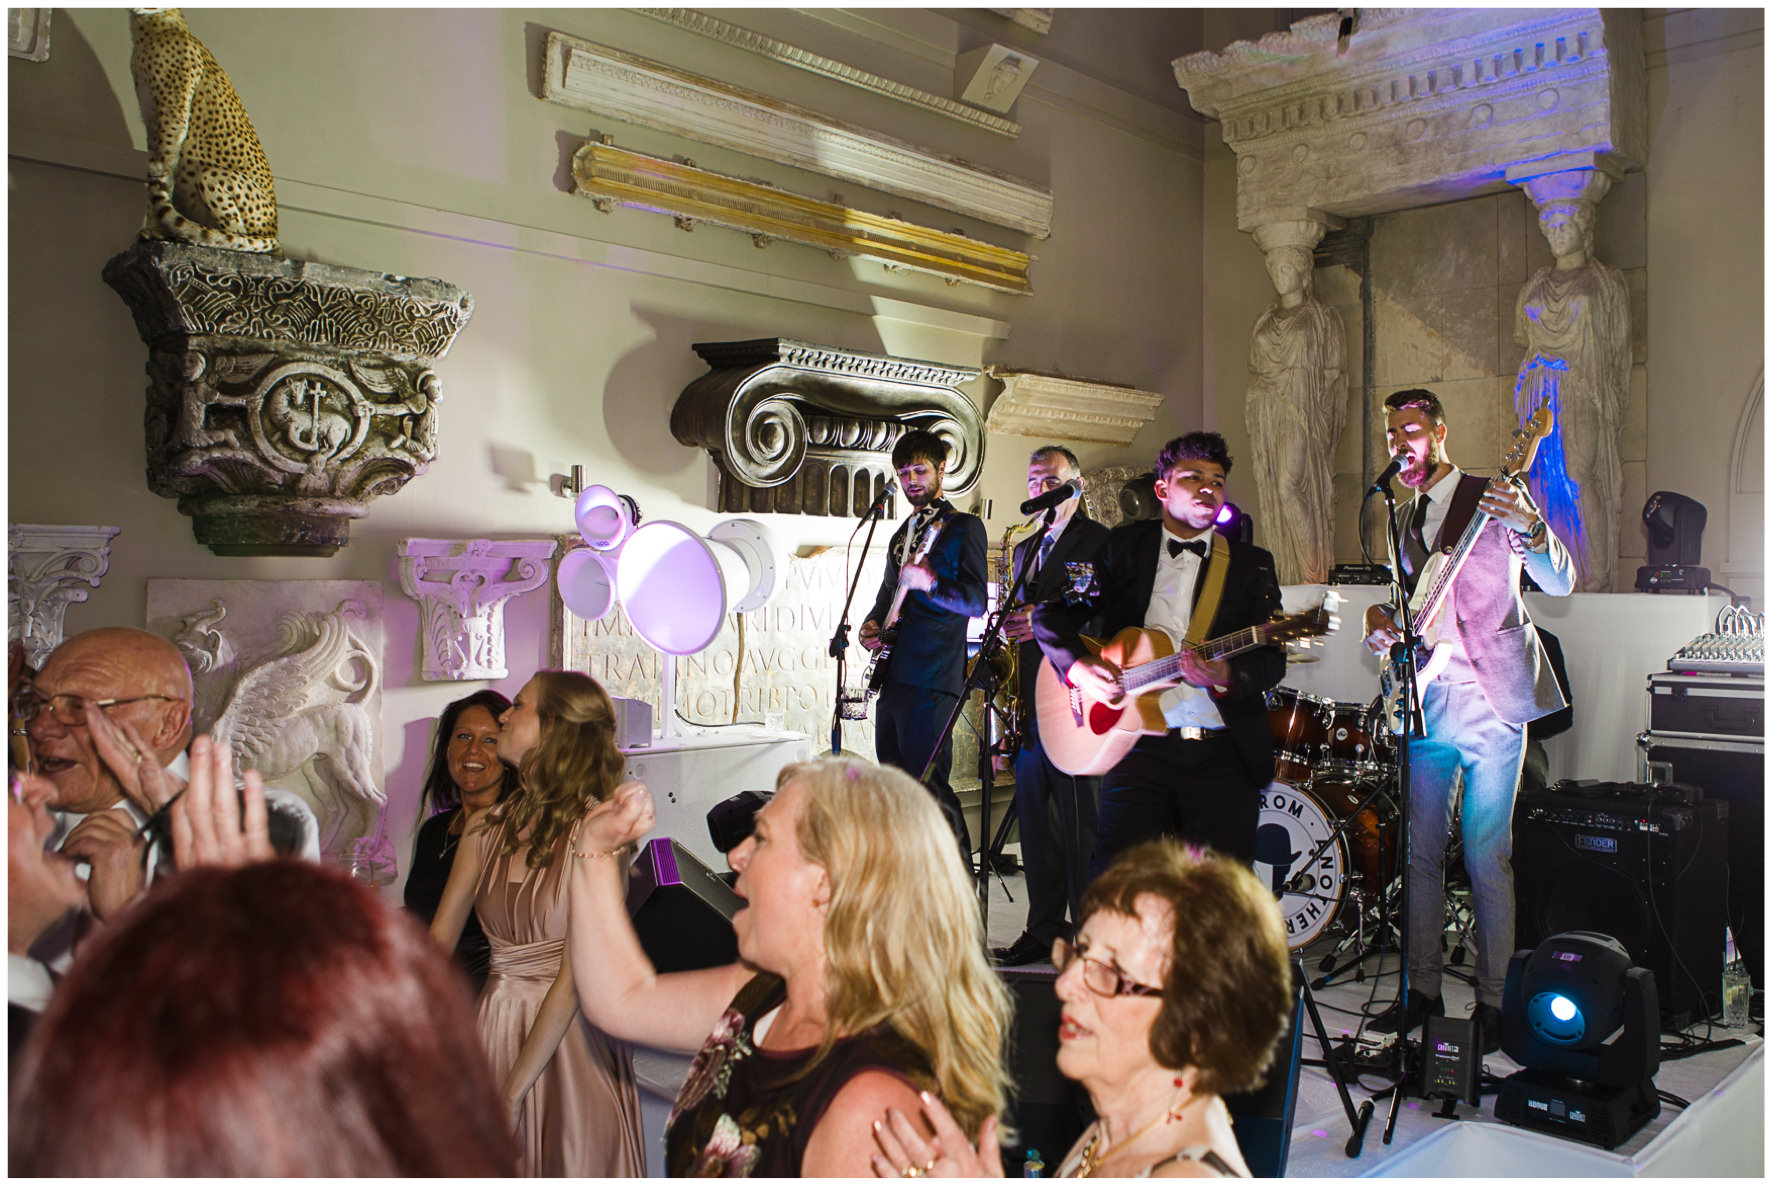 Lucy Davenport Photography, Aynhoe Park, Oxfordshire, wedding venue, Rock My Wedding, orangery, band